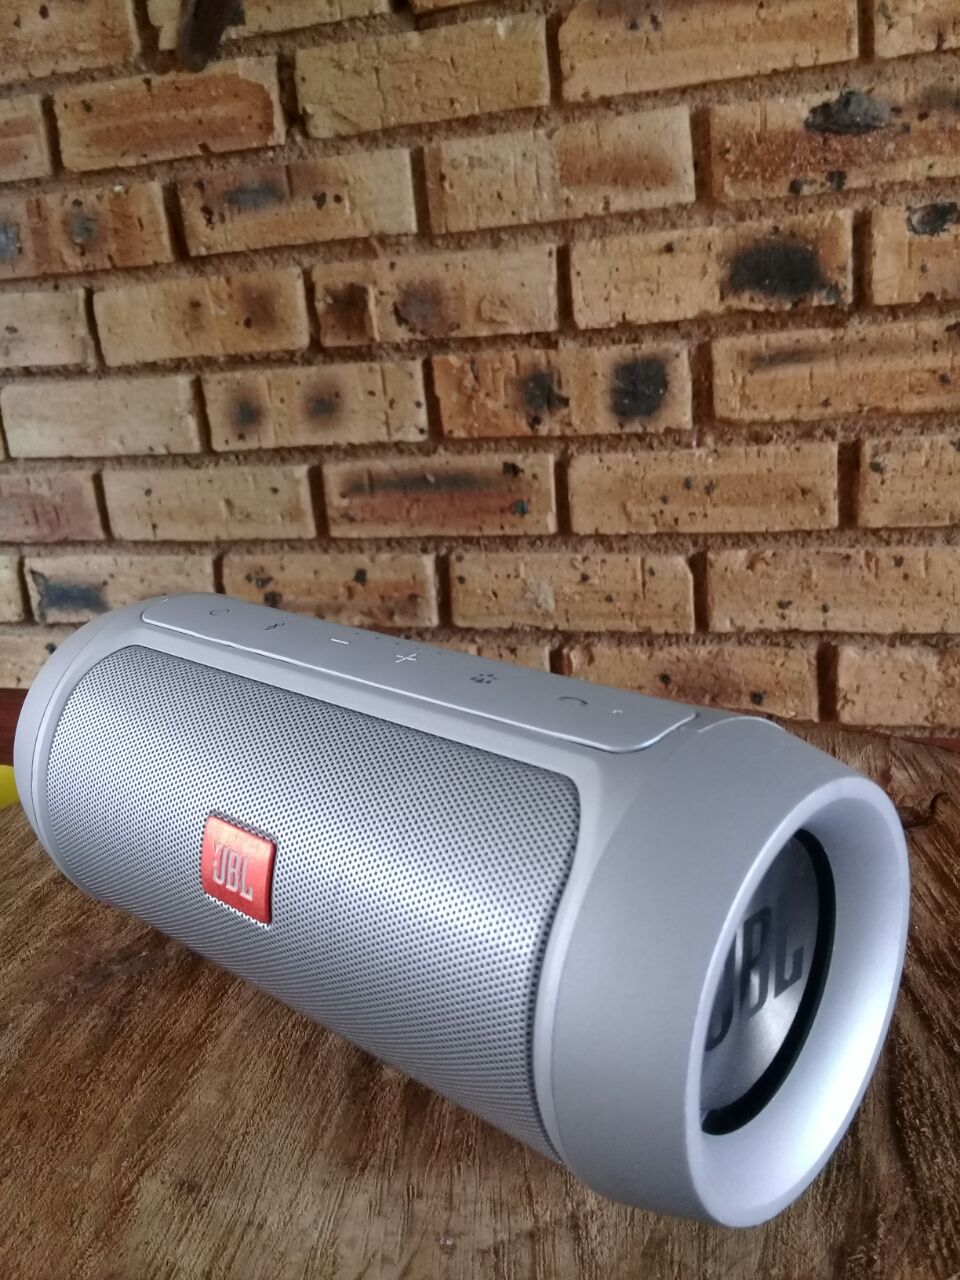 how to connect jbl wireless speakers